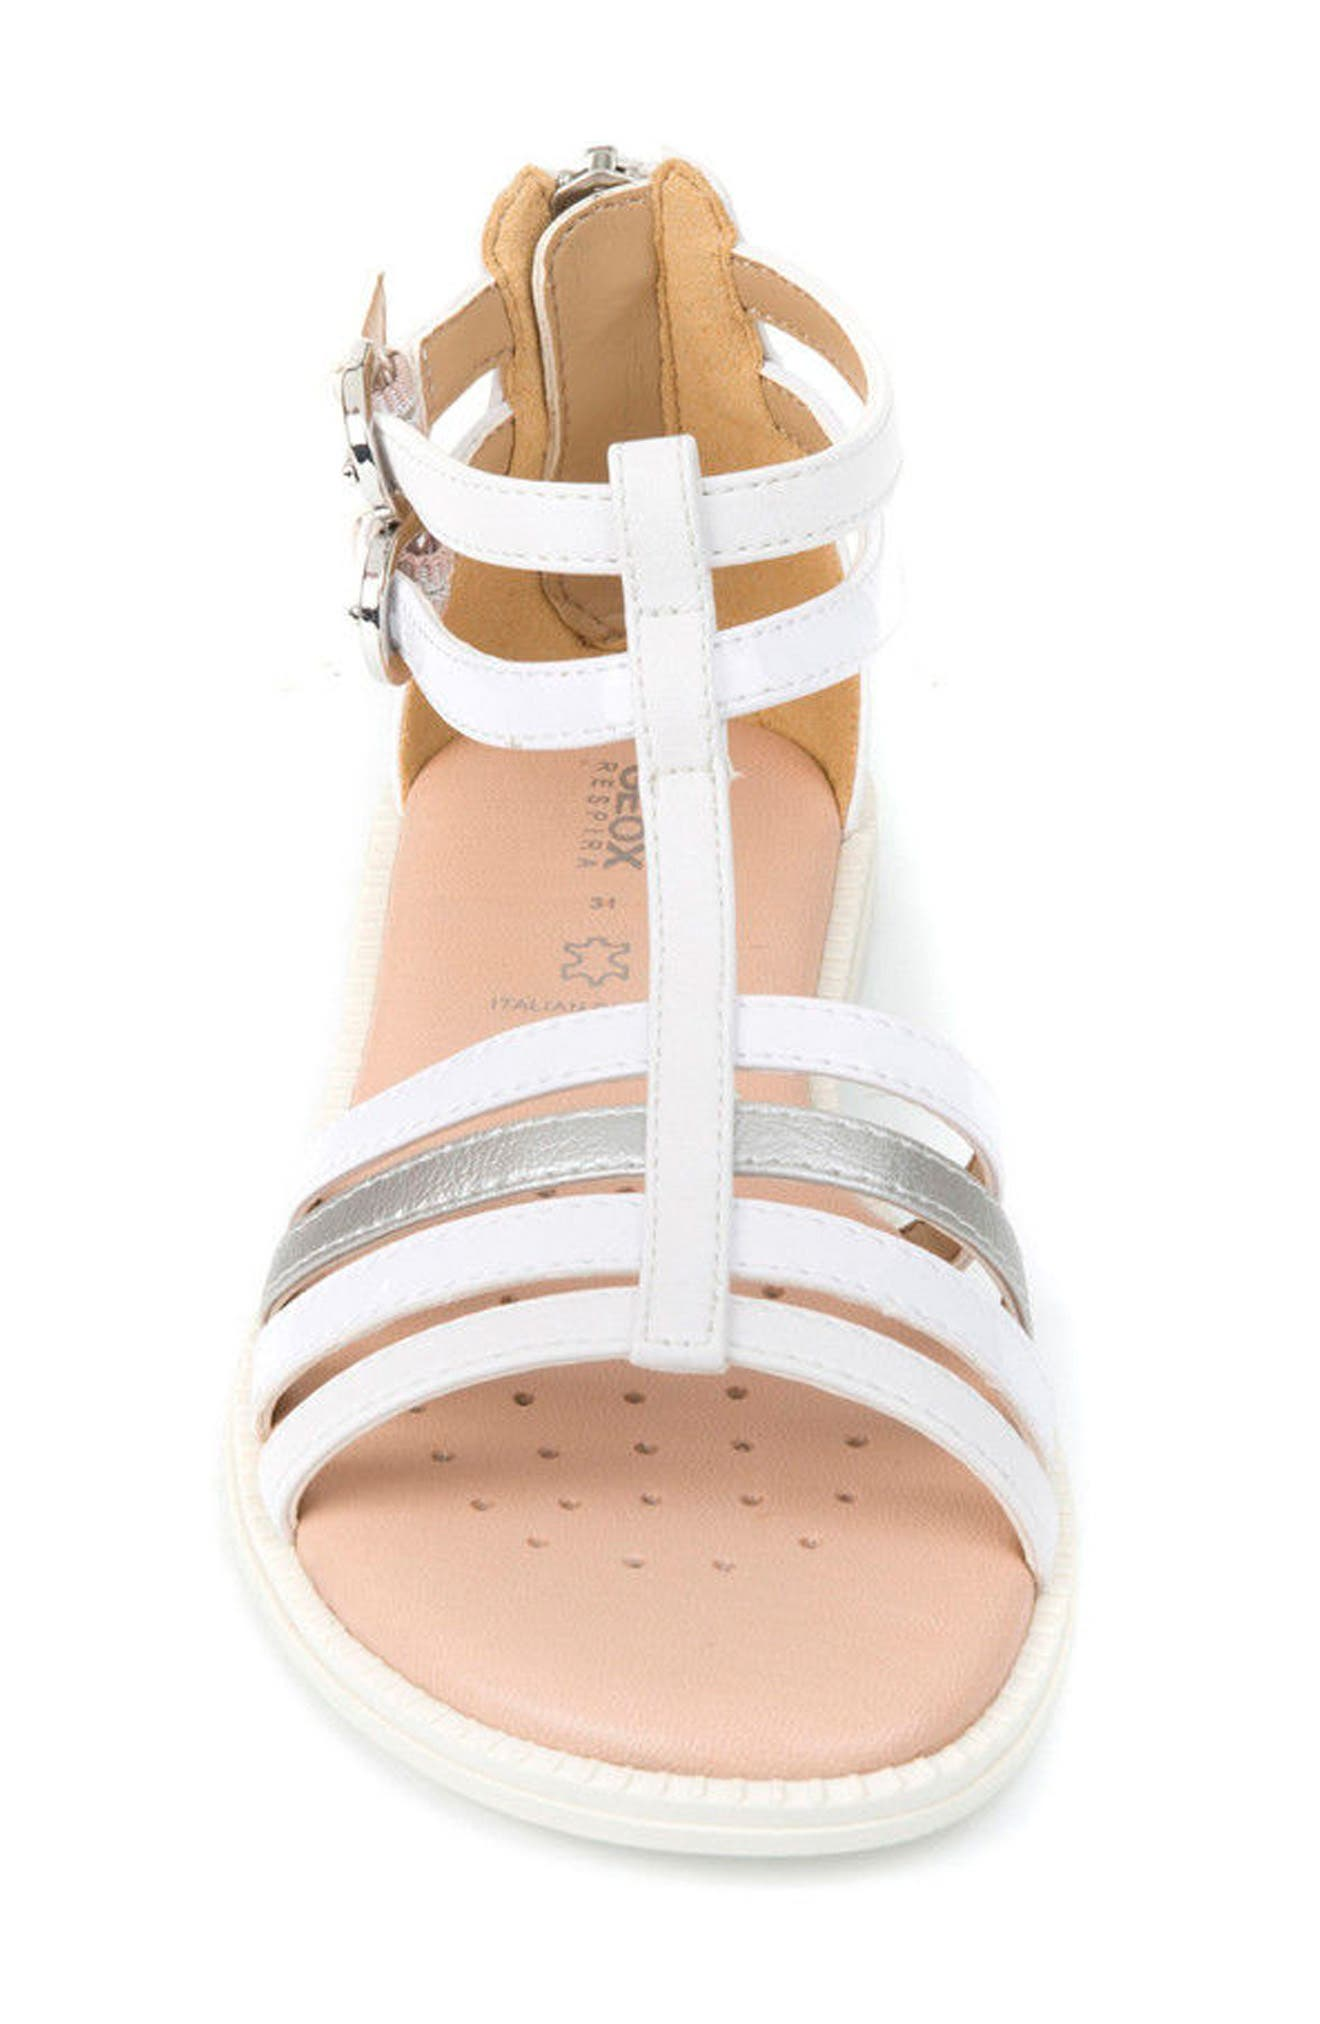 Karly Sandal,                             Alternate thumbnail 4, color,                             White